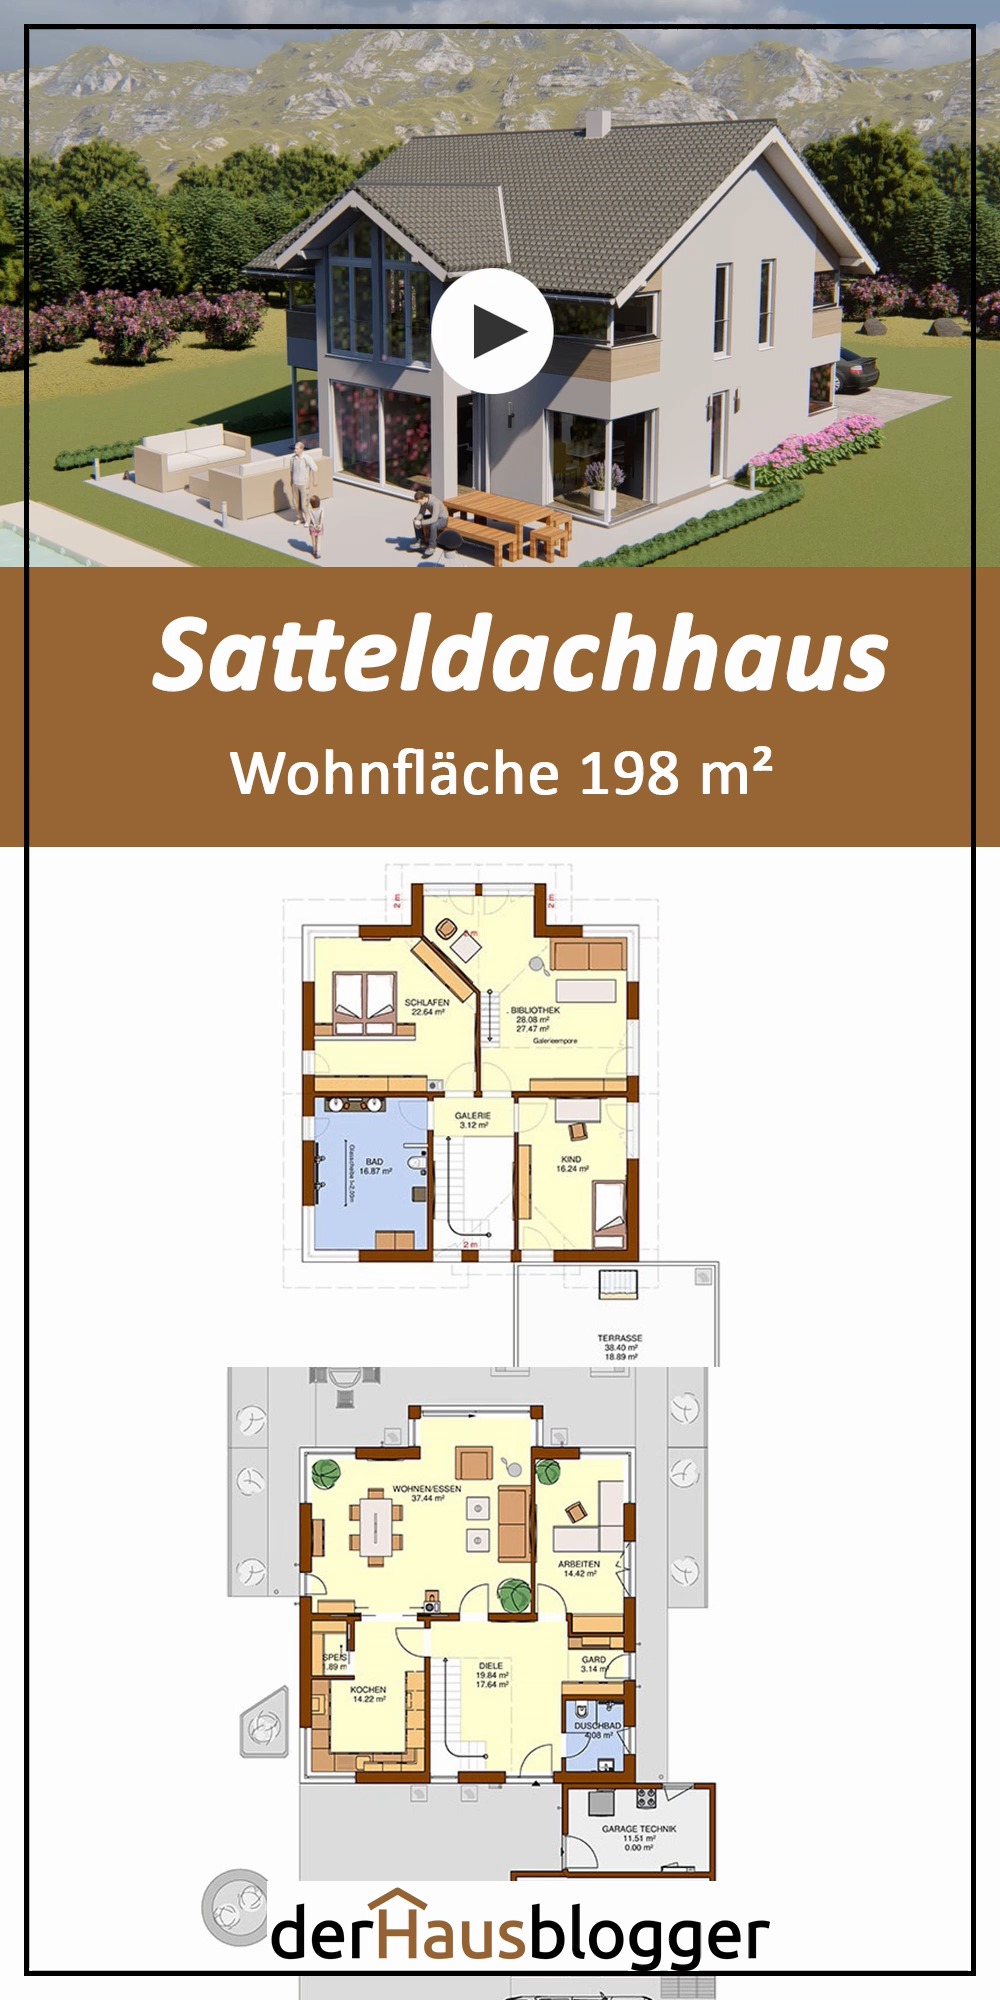 Photo of Satteldachhaus 198m2